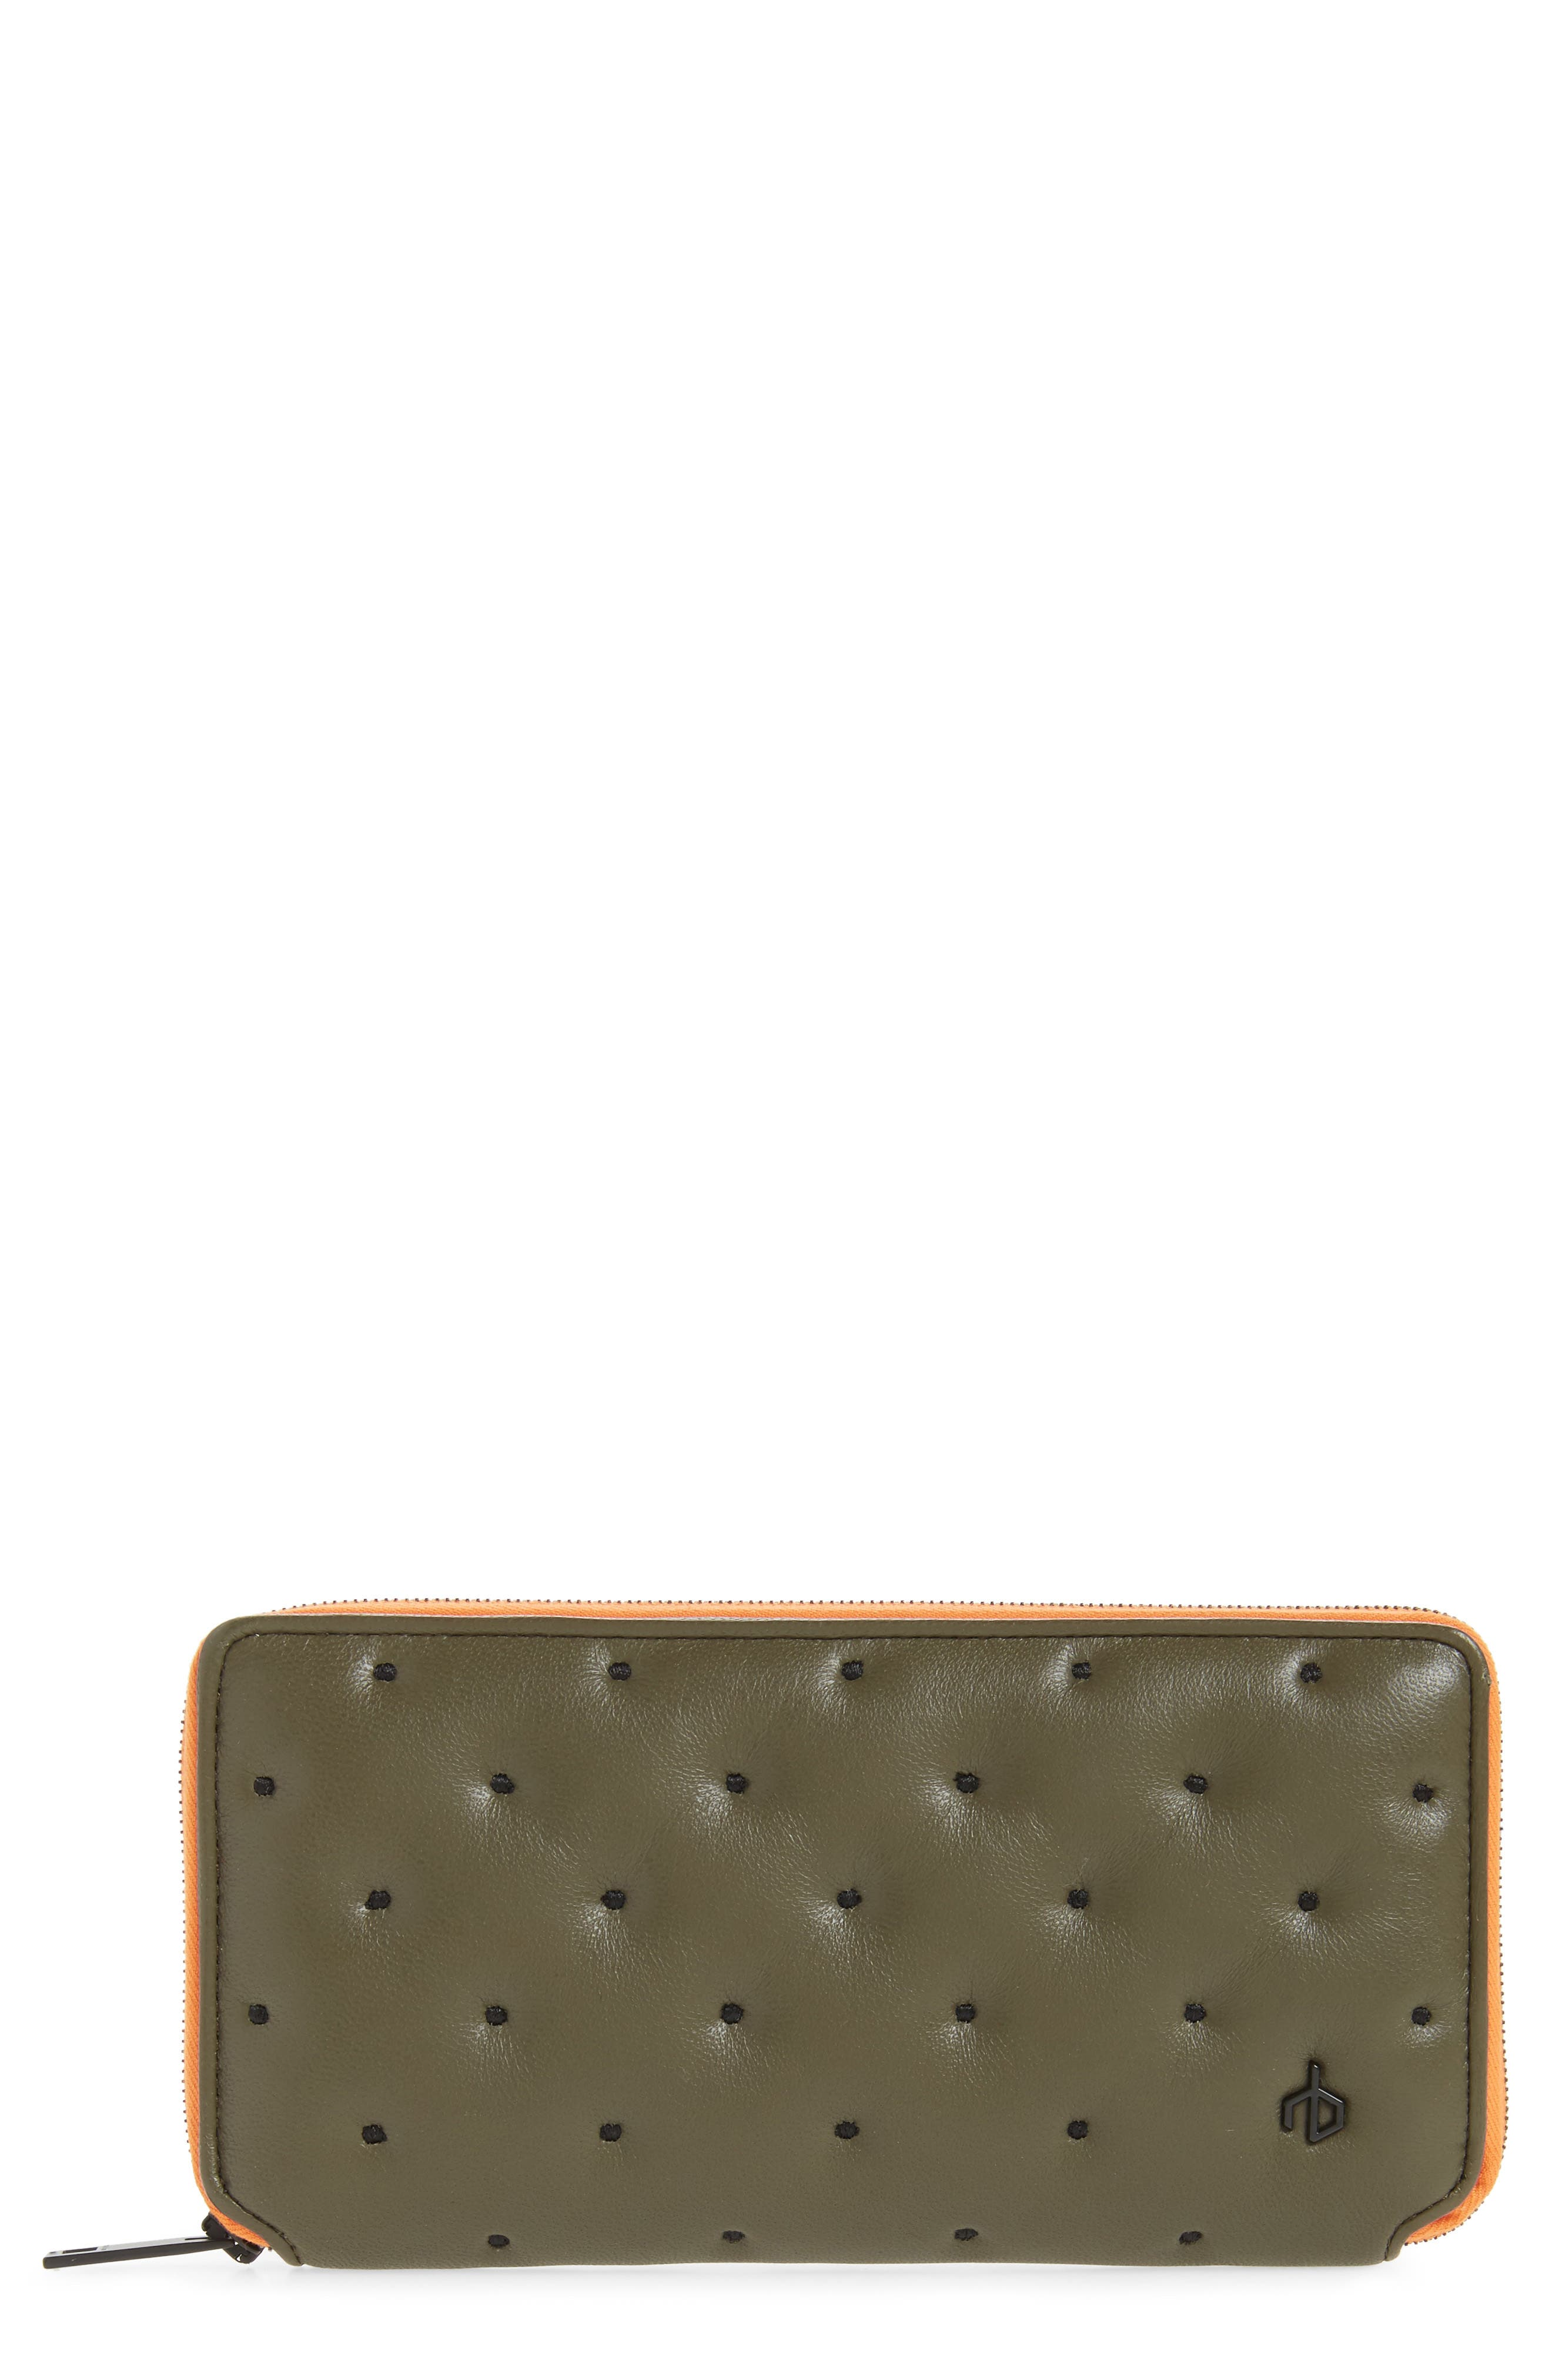 Dot Dash Quilted Leather Zip Around Wallet,                             Main thumbnail 1, color,                             Green Dot Dash Quilt